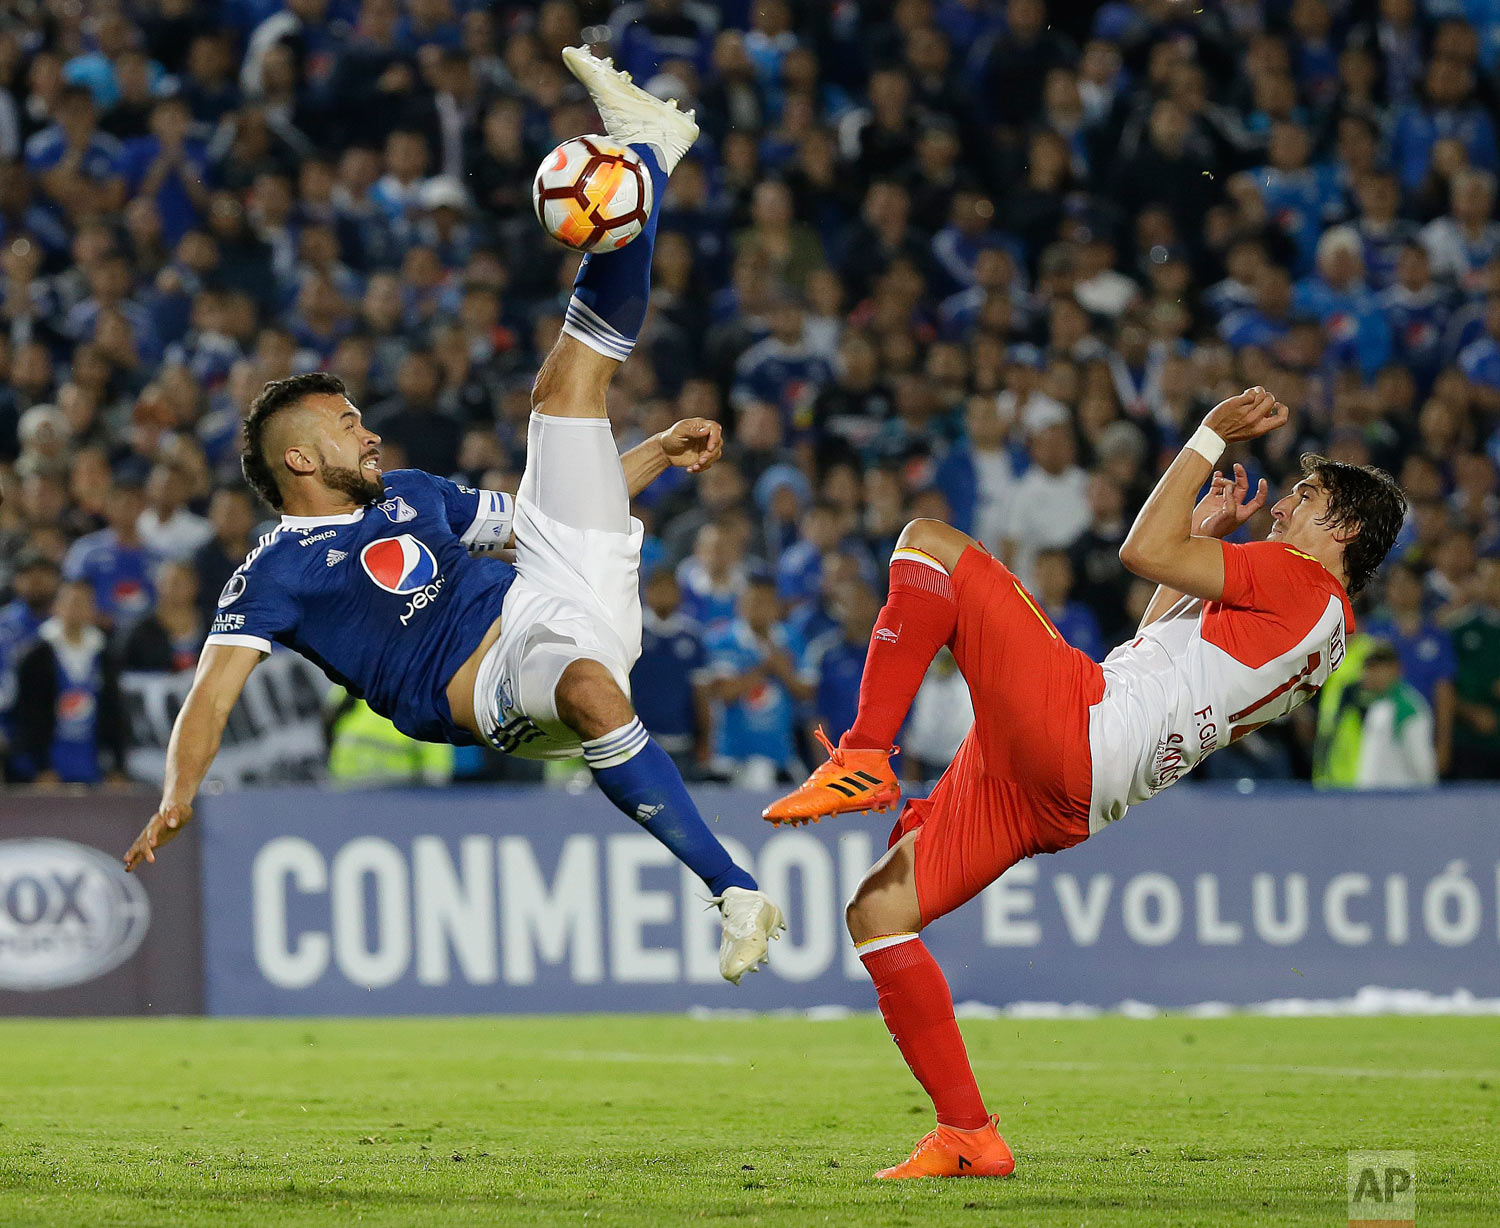 In this Oct. 2, 2018 photo, Andres Cadavid of Colombia's Millonarios kicks the ball past Facundo Guichon of Colombia's Independiente Santa Fe during a Copa Sudamericana soccer match in Bogota, Colombia. (AP Photo/Fernando Vergara)